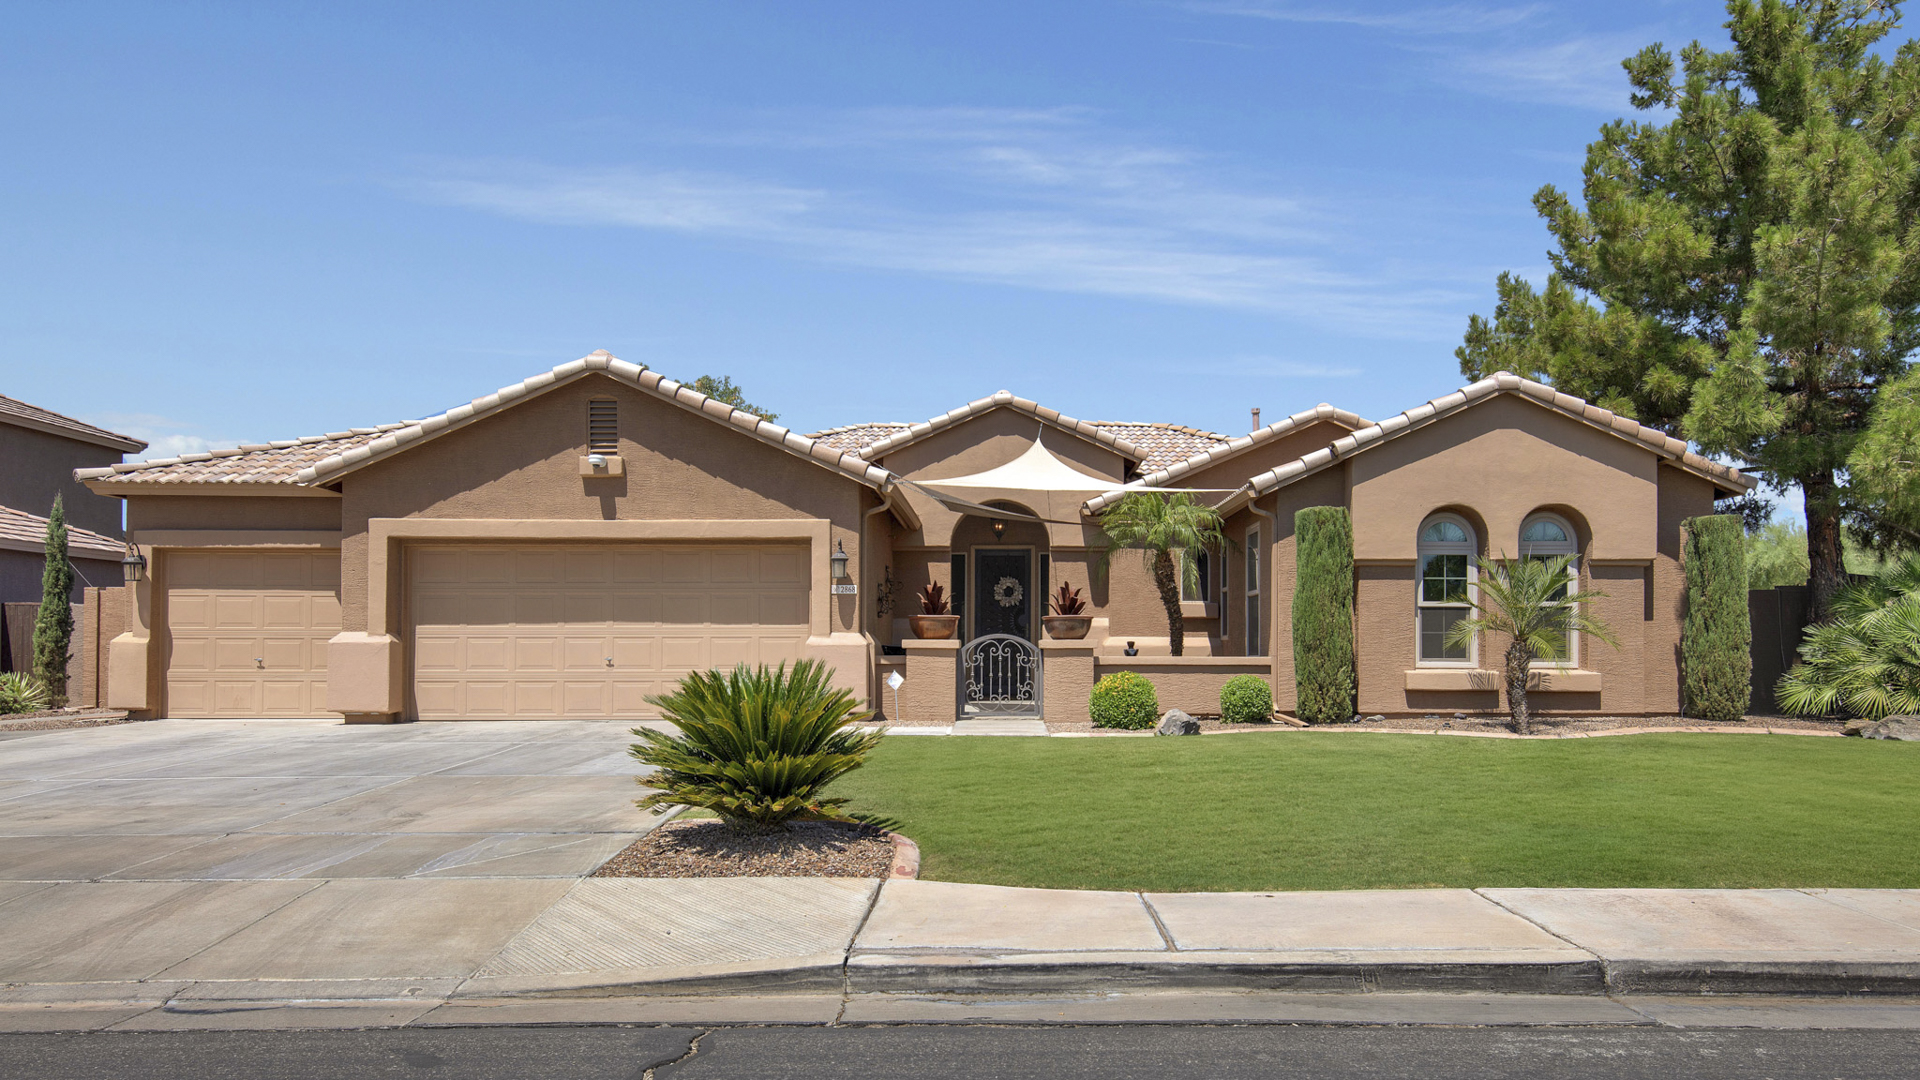 SOLD IN A WEEKEND - 2868 S Cottonwood Drive, Gilbert, AZ 85295 - Allen Ranch | Amy Jones Group